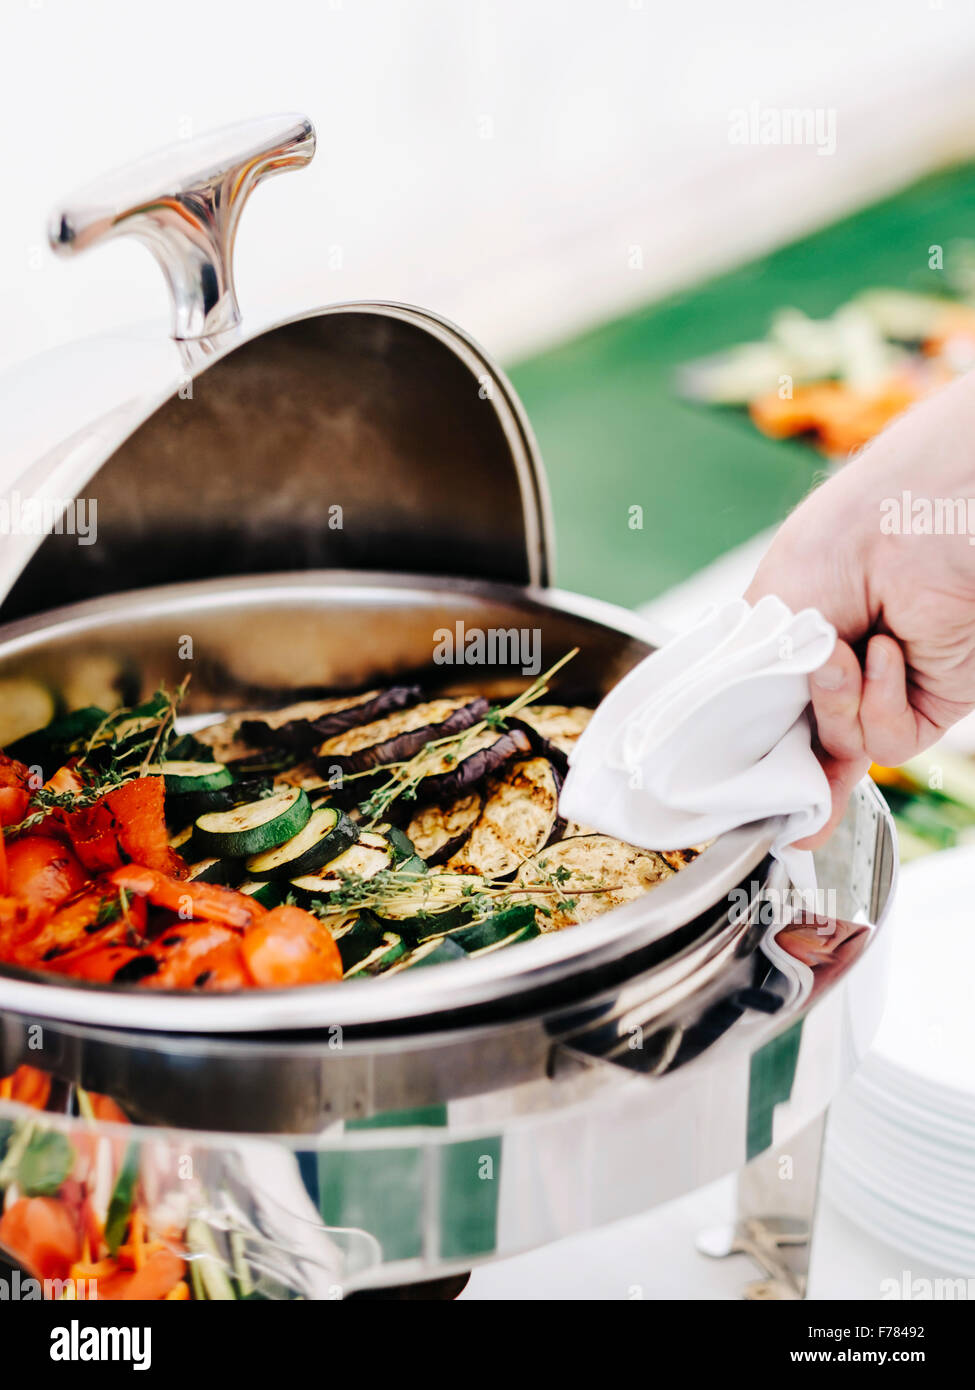 Steam table with grilled vegetables - Stock Image